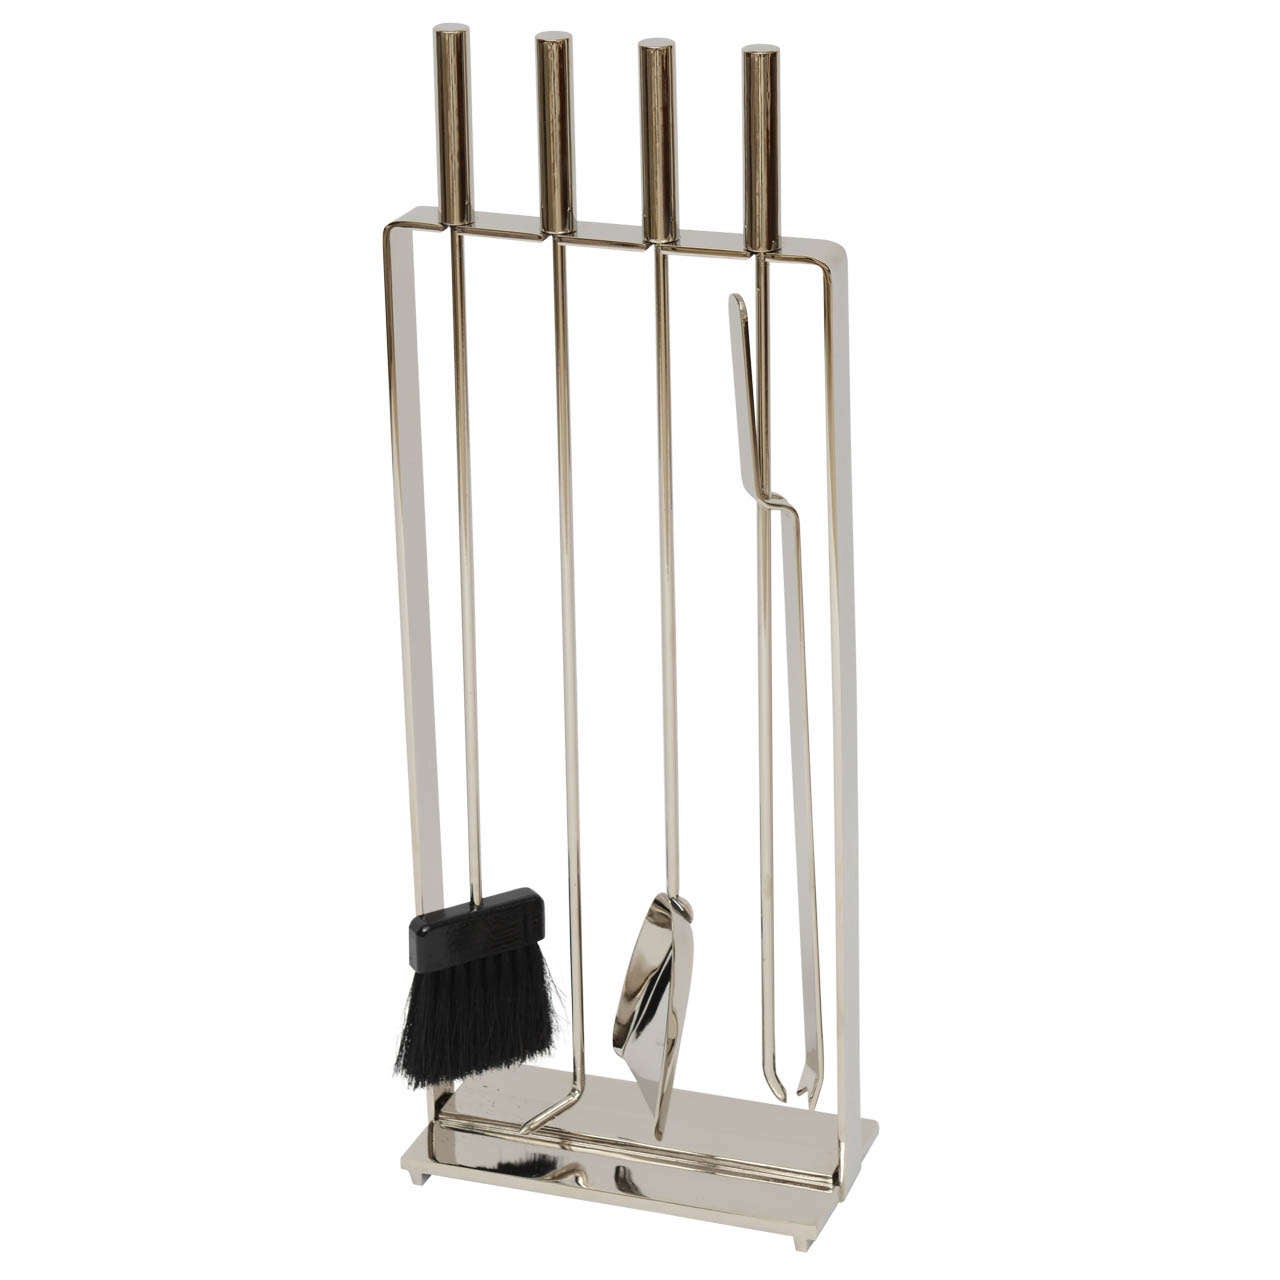 60 39 S Modernist Nickeled Fireplace Tool Set By Pilgrim At